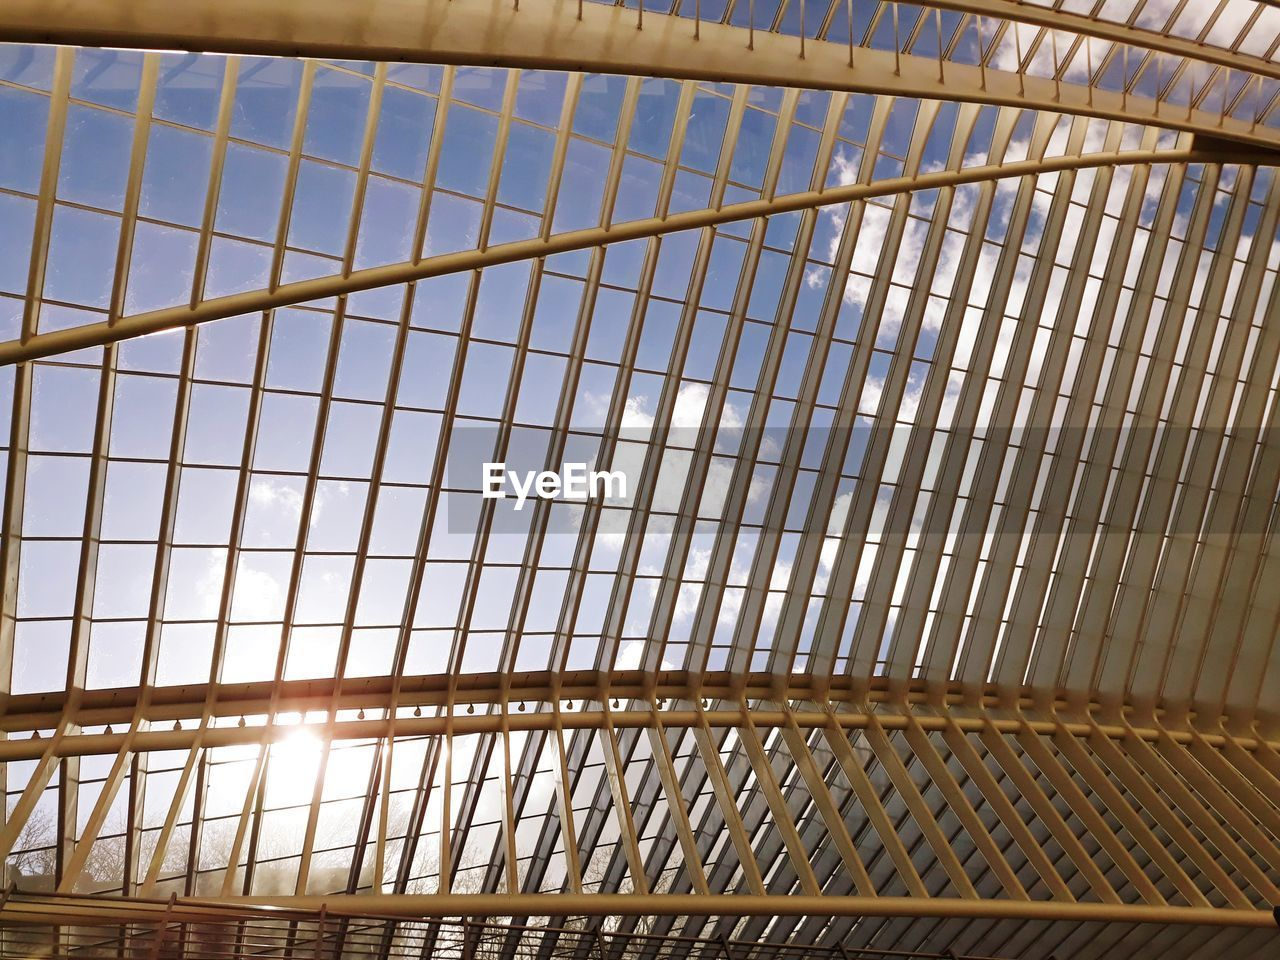 architecture, no people, metal, pattern, low angle view, indoors, built structure, modern, sunlight, ceiling, full frame, reflection, grid, sky, glass - material, day, backgrounds, nature